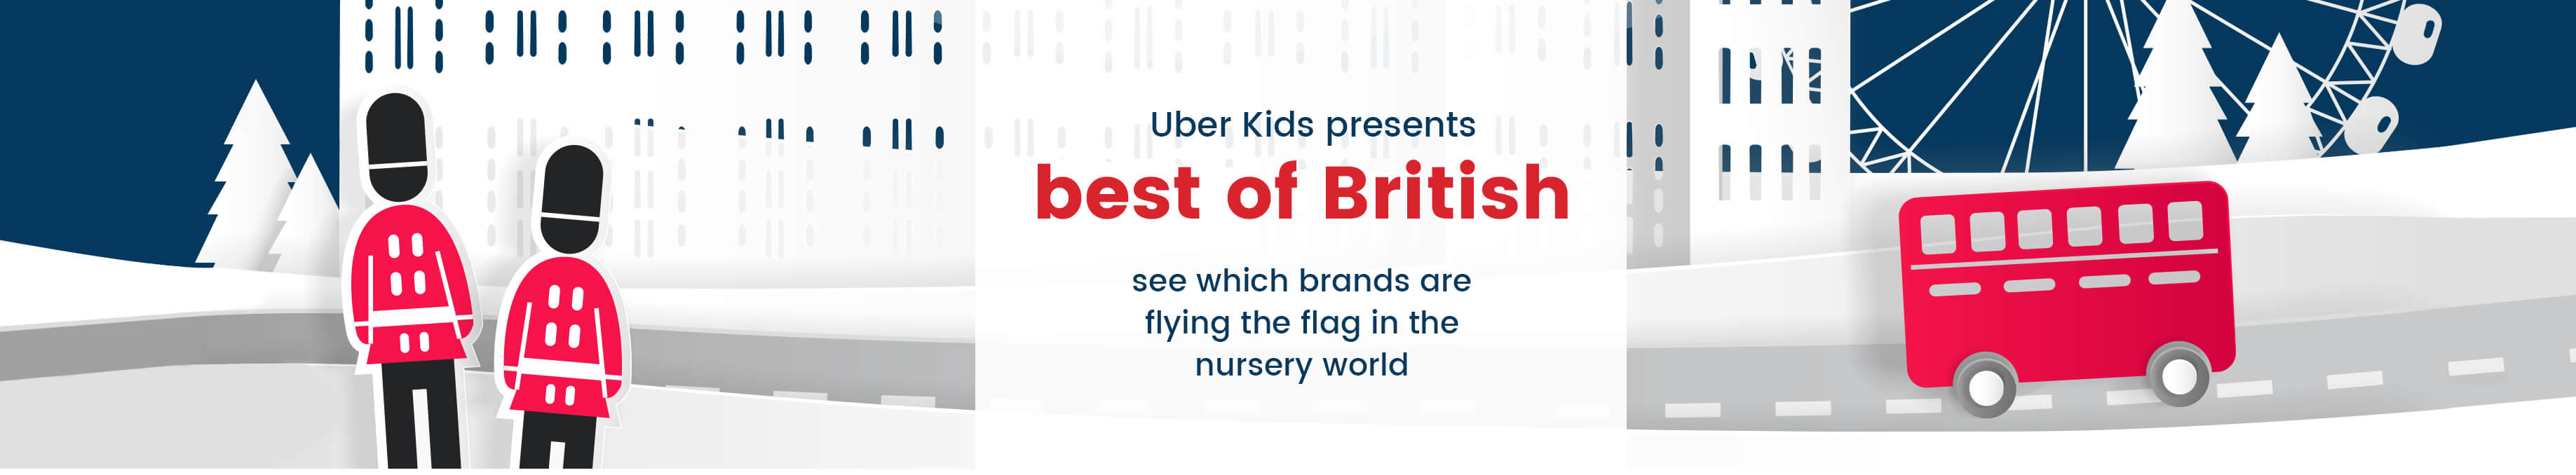 Uber Kids presents: The Best of British